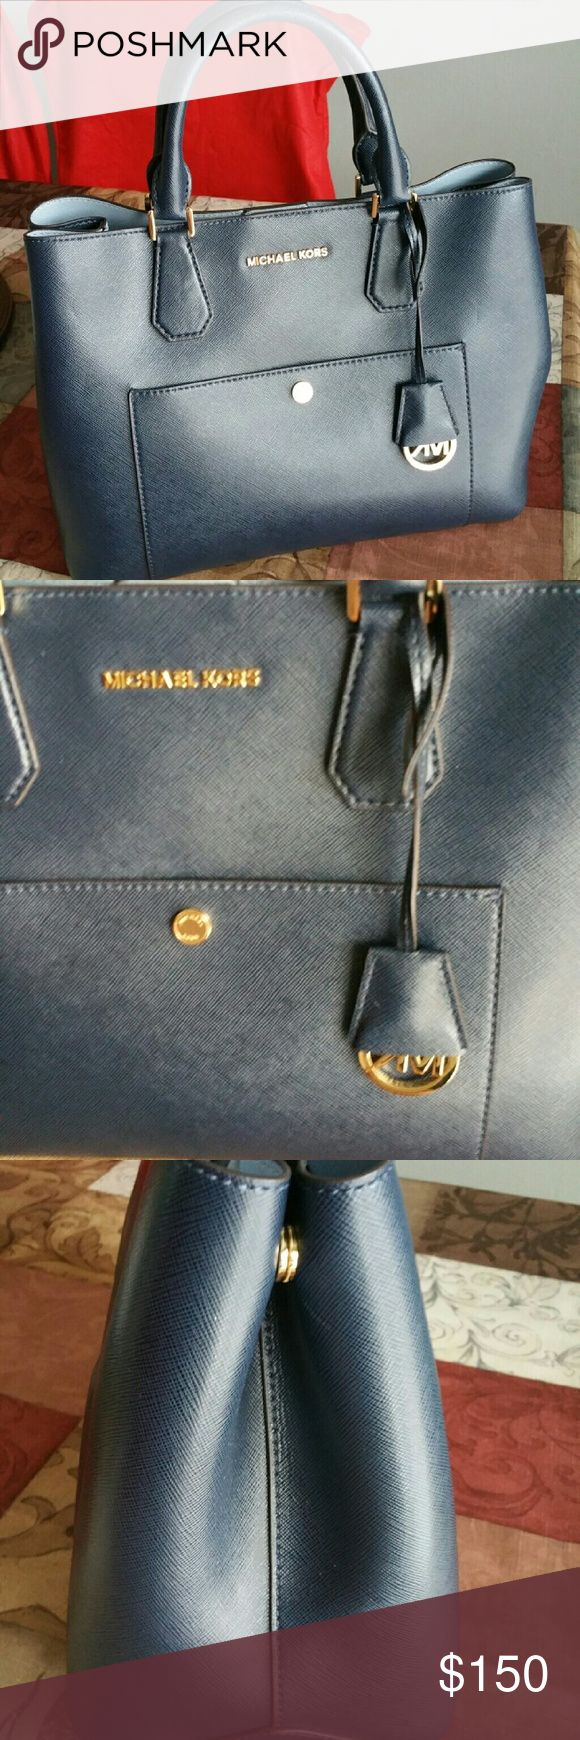 Michael Kors Greenwich bag PRICE FIRM,I ALREADY LOWERED ALL MY PRICES Large size Tv 400 Michael Kors Bags Shoulder Bags